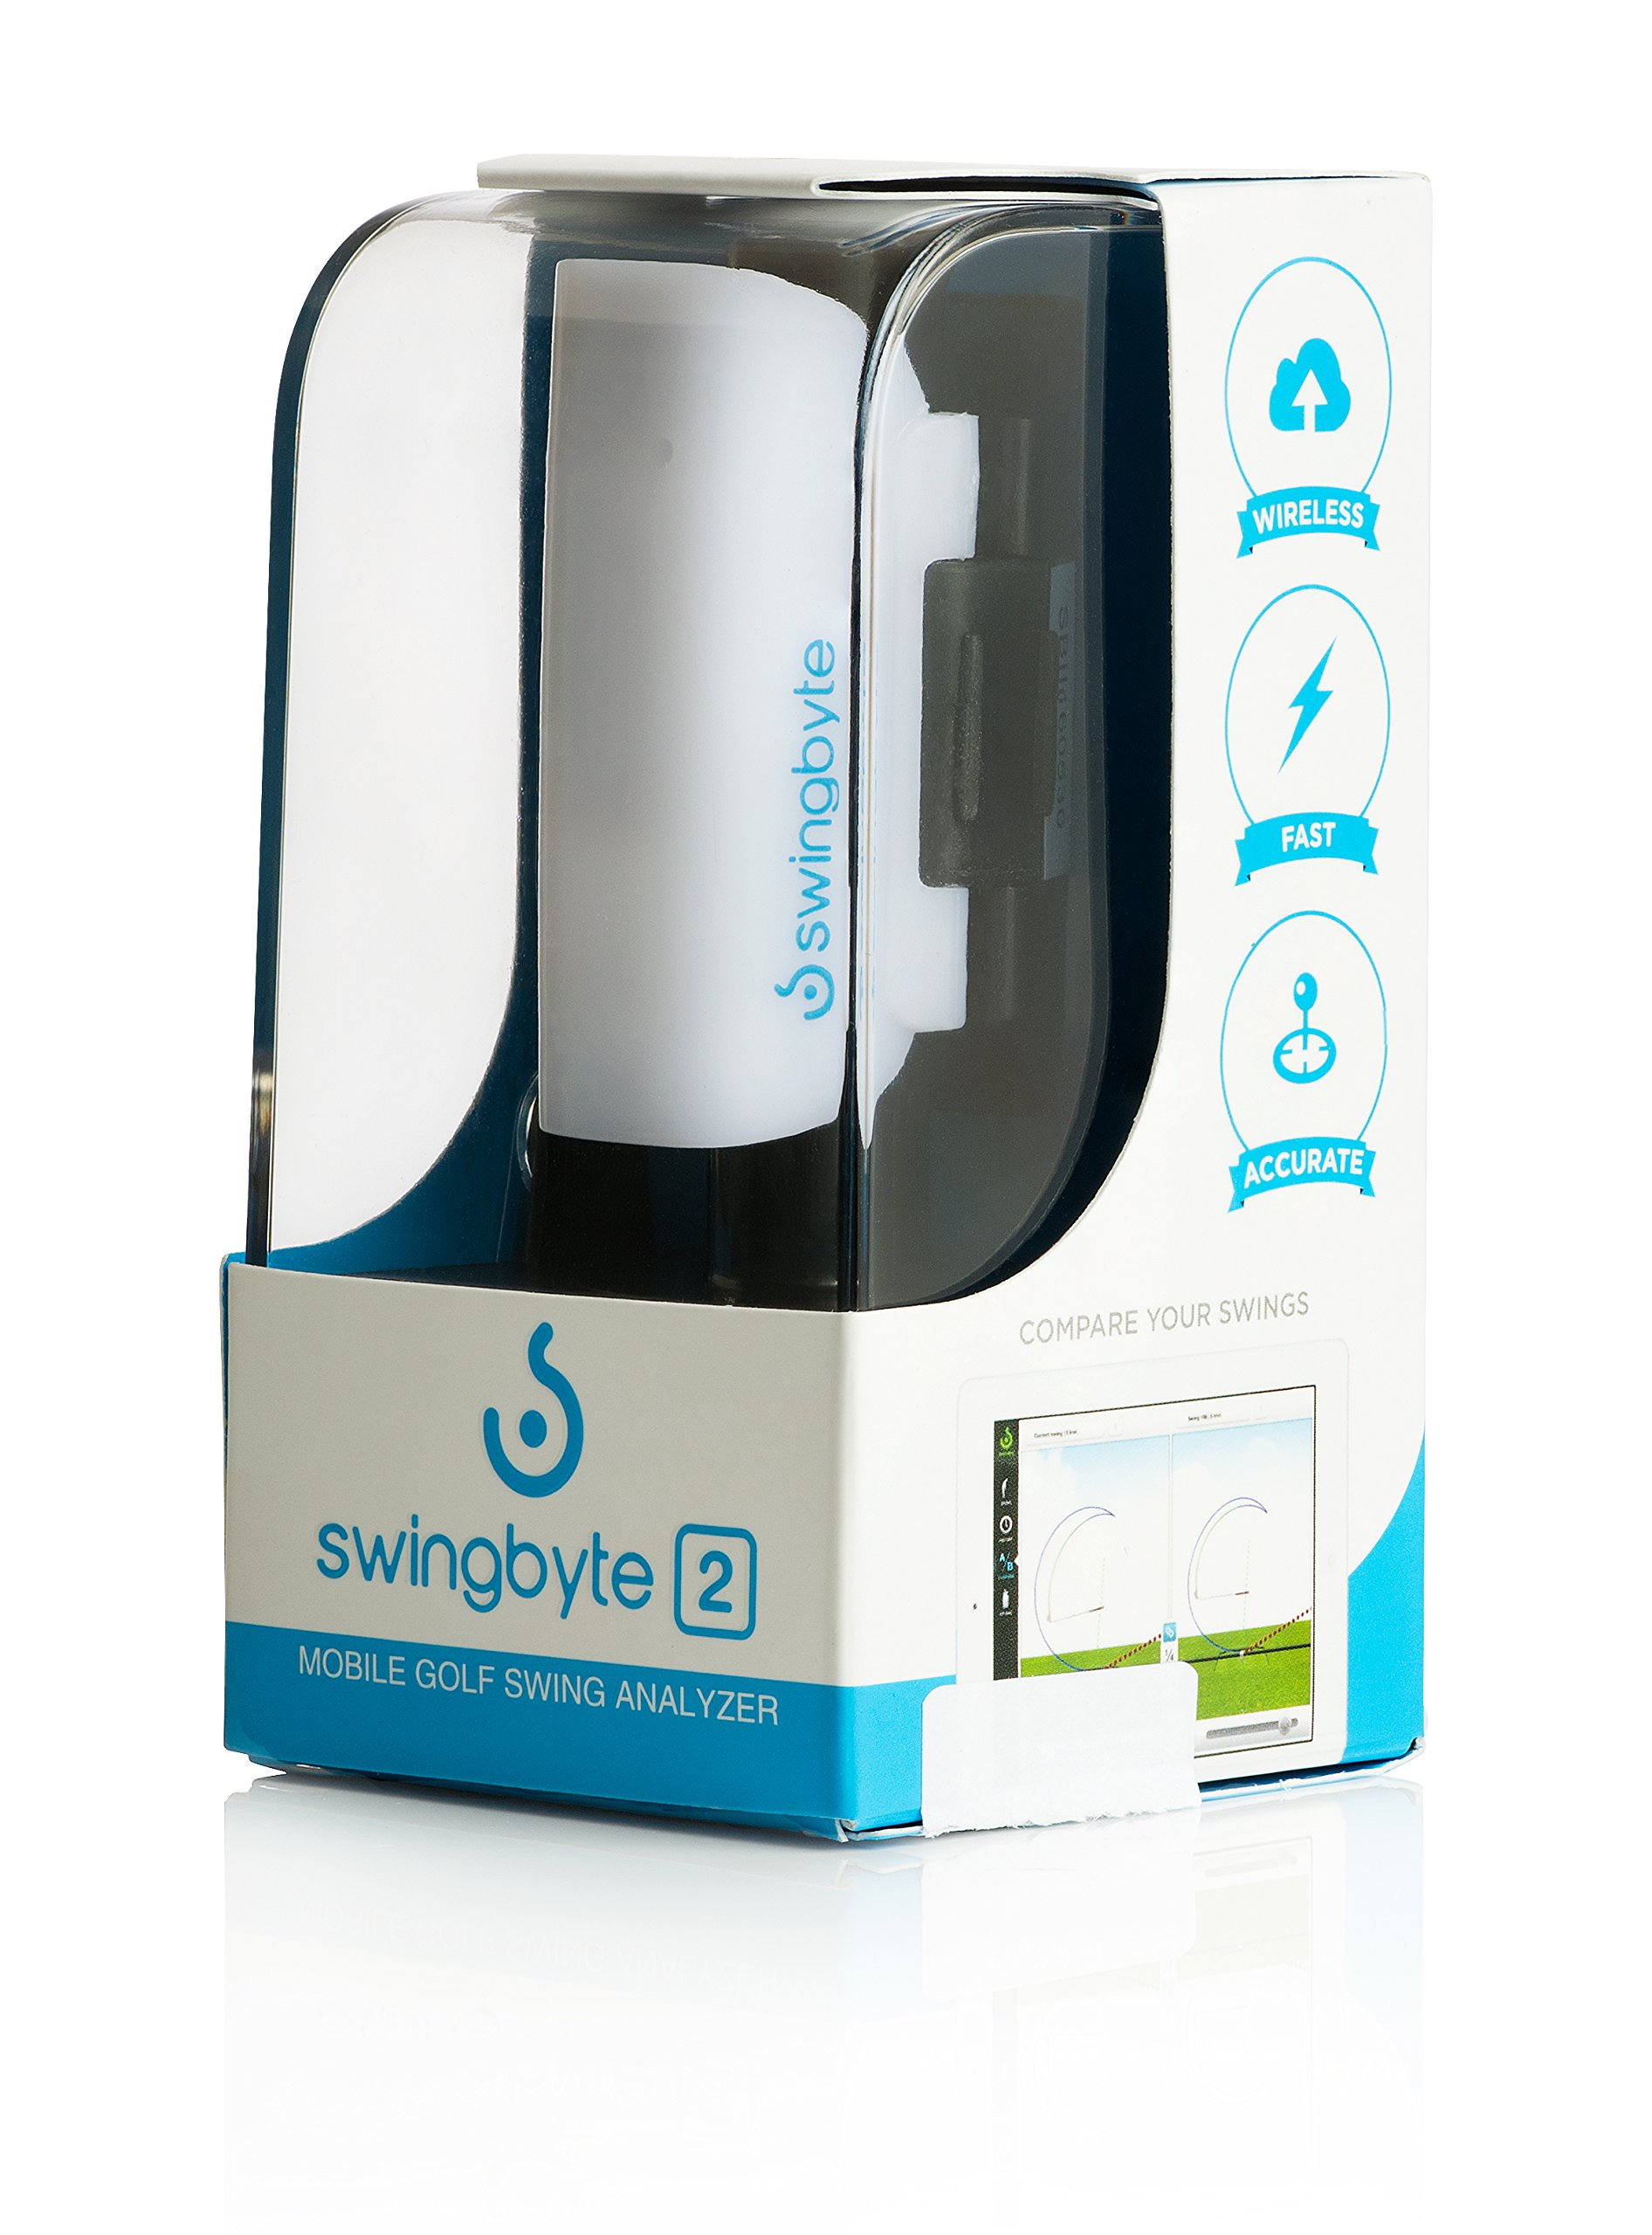 Swingbyte 2 Golf Training Device - Golf's Most Trusted Mobile Swing Analyzer - Includes Mobile App for iPhone and Android by Swingbyte (Image #2)